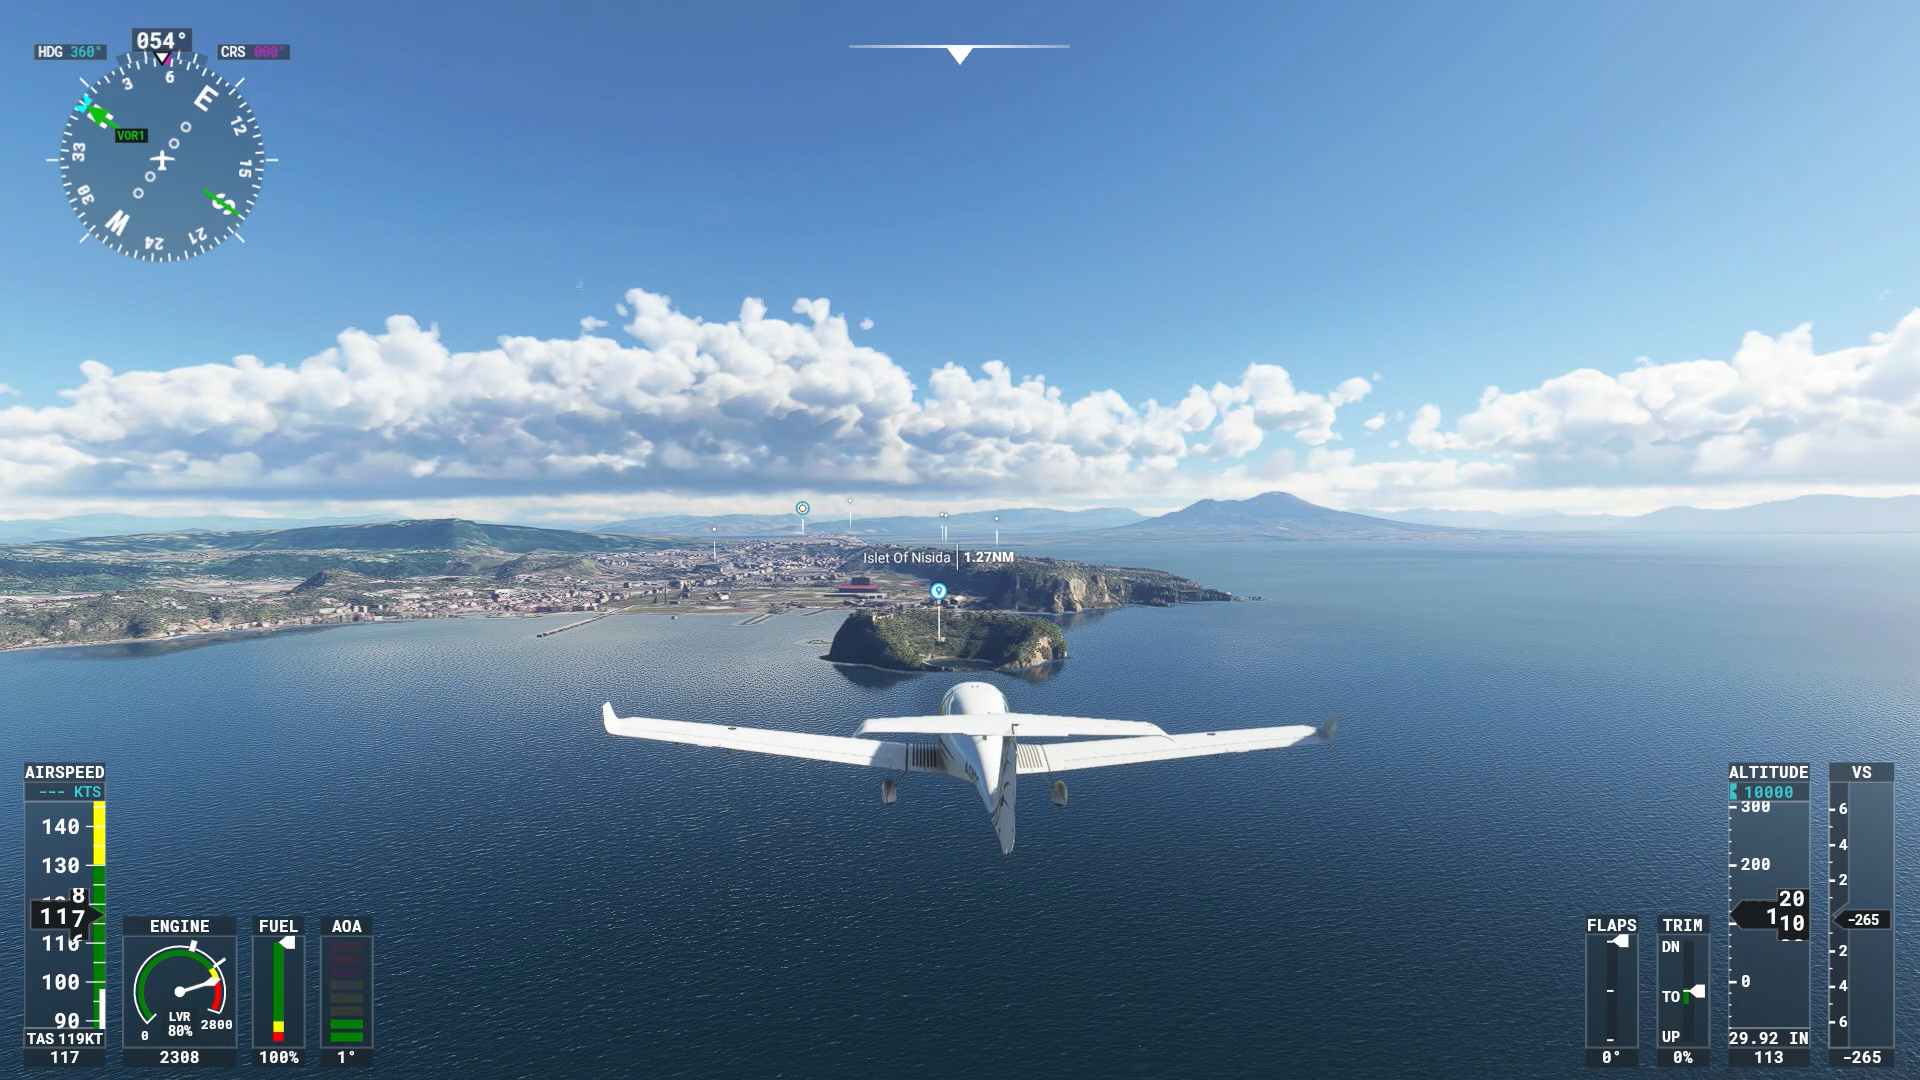 Small aircraft shown from behind flying over sea towards land.